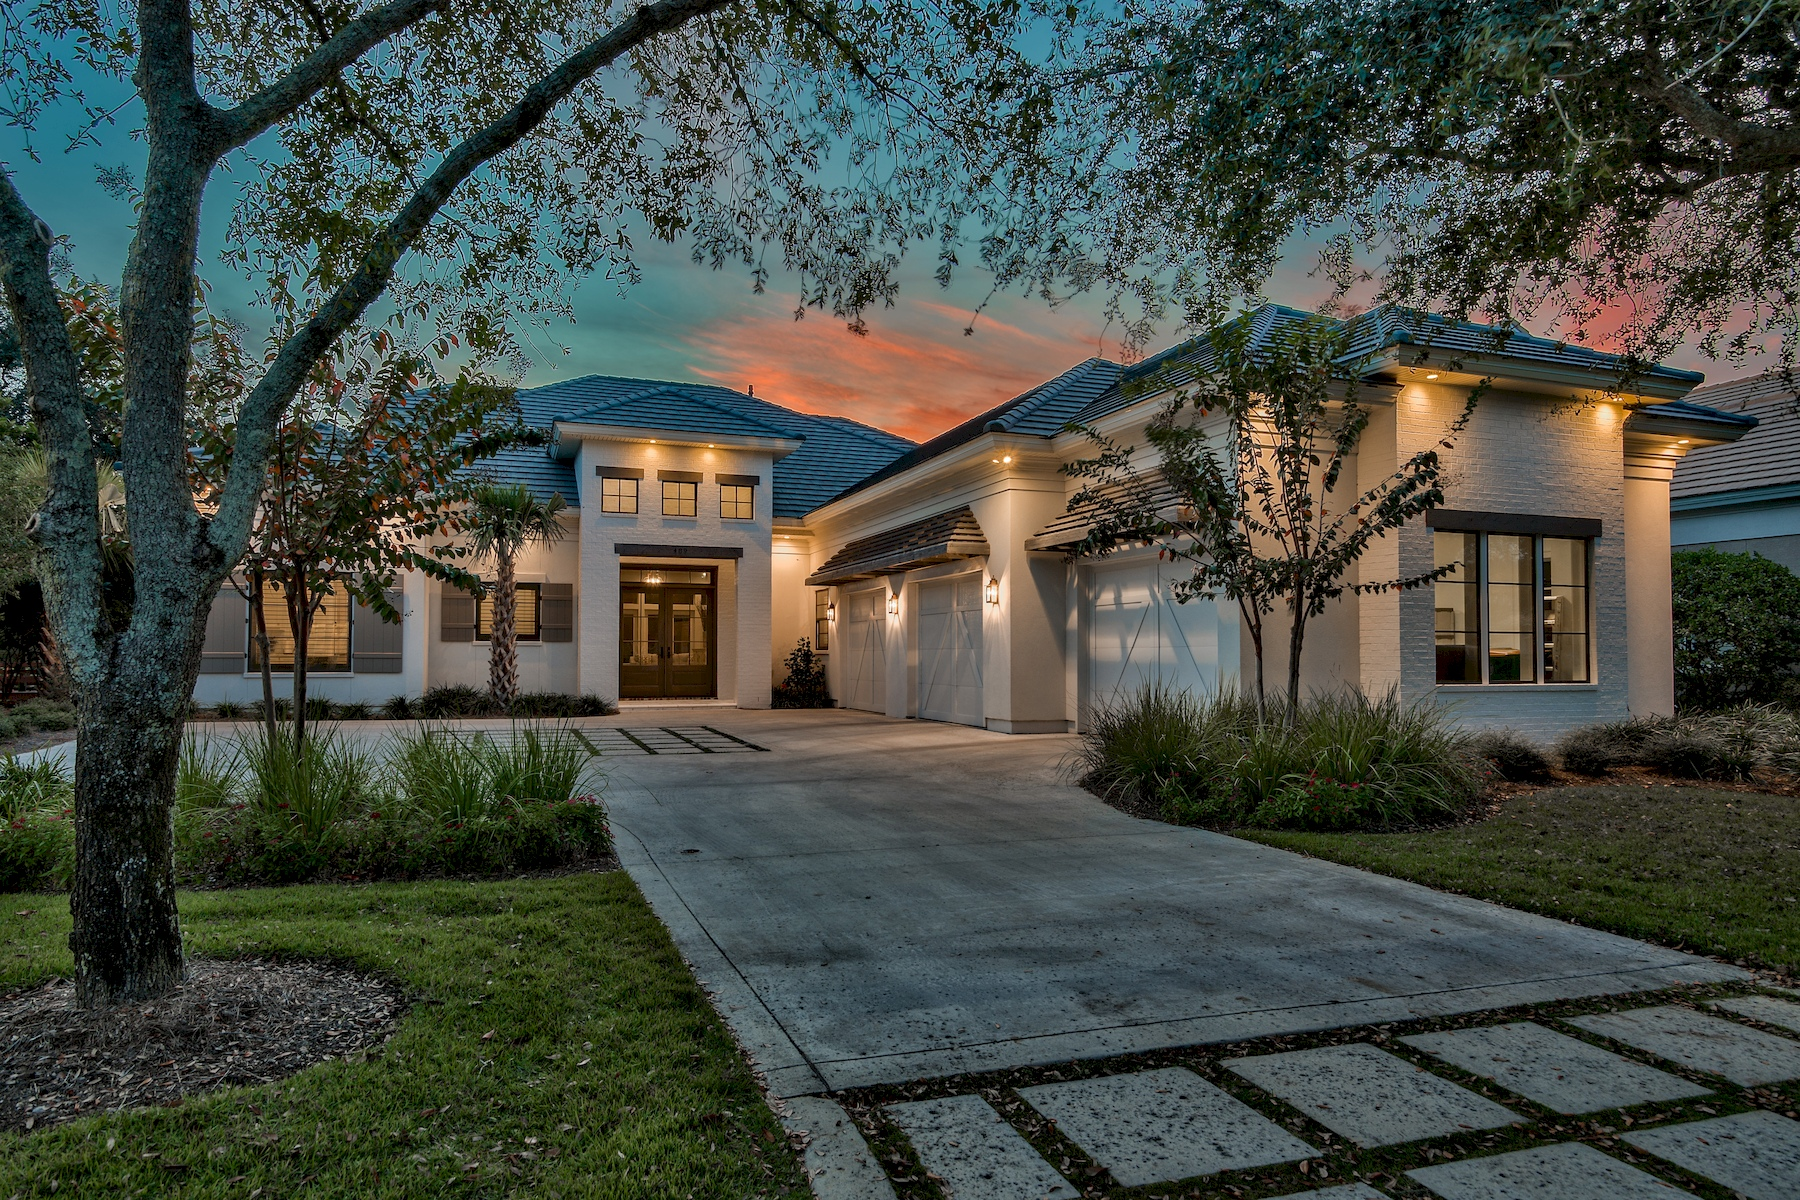 Single Family Home for Sale at Coastal Contemporary Lakefront Home in Exclusive Gated Community 489 Regatta Bay Boulevard, Destin, Florida, 32541 United States